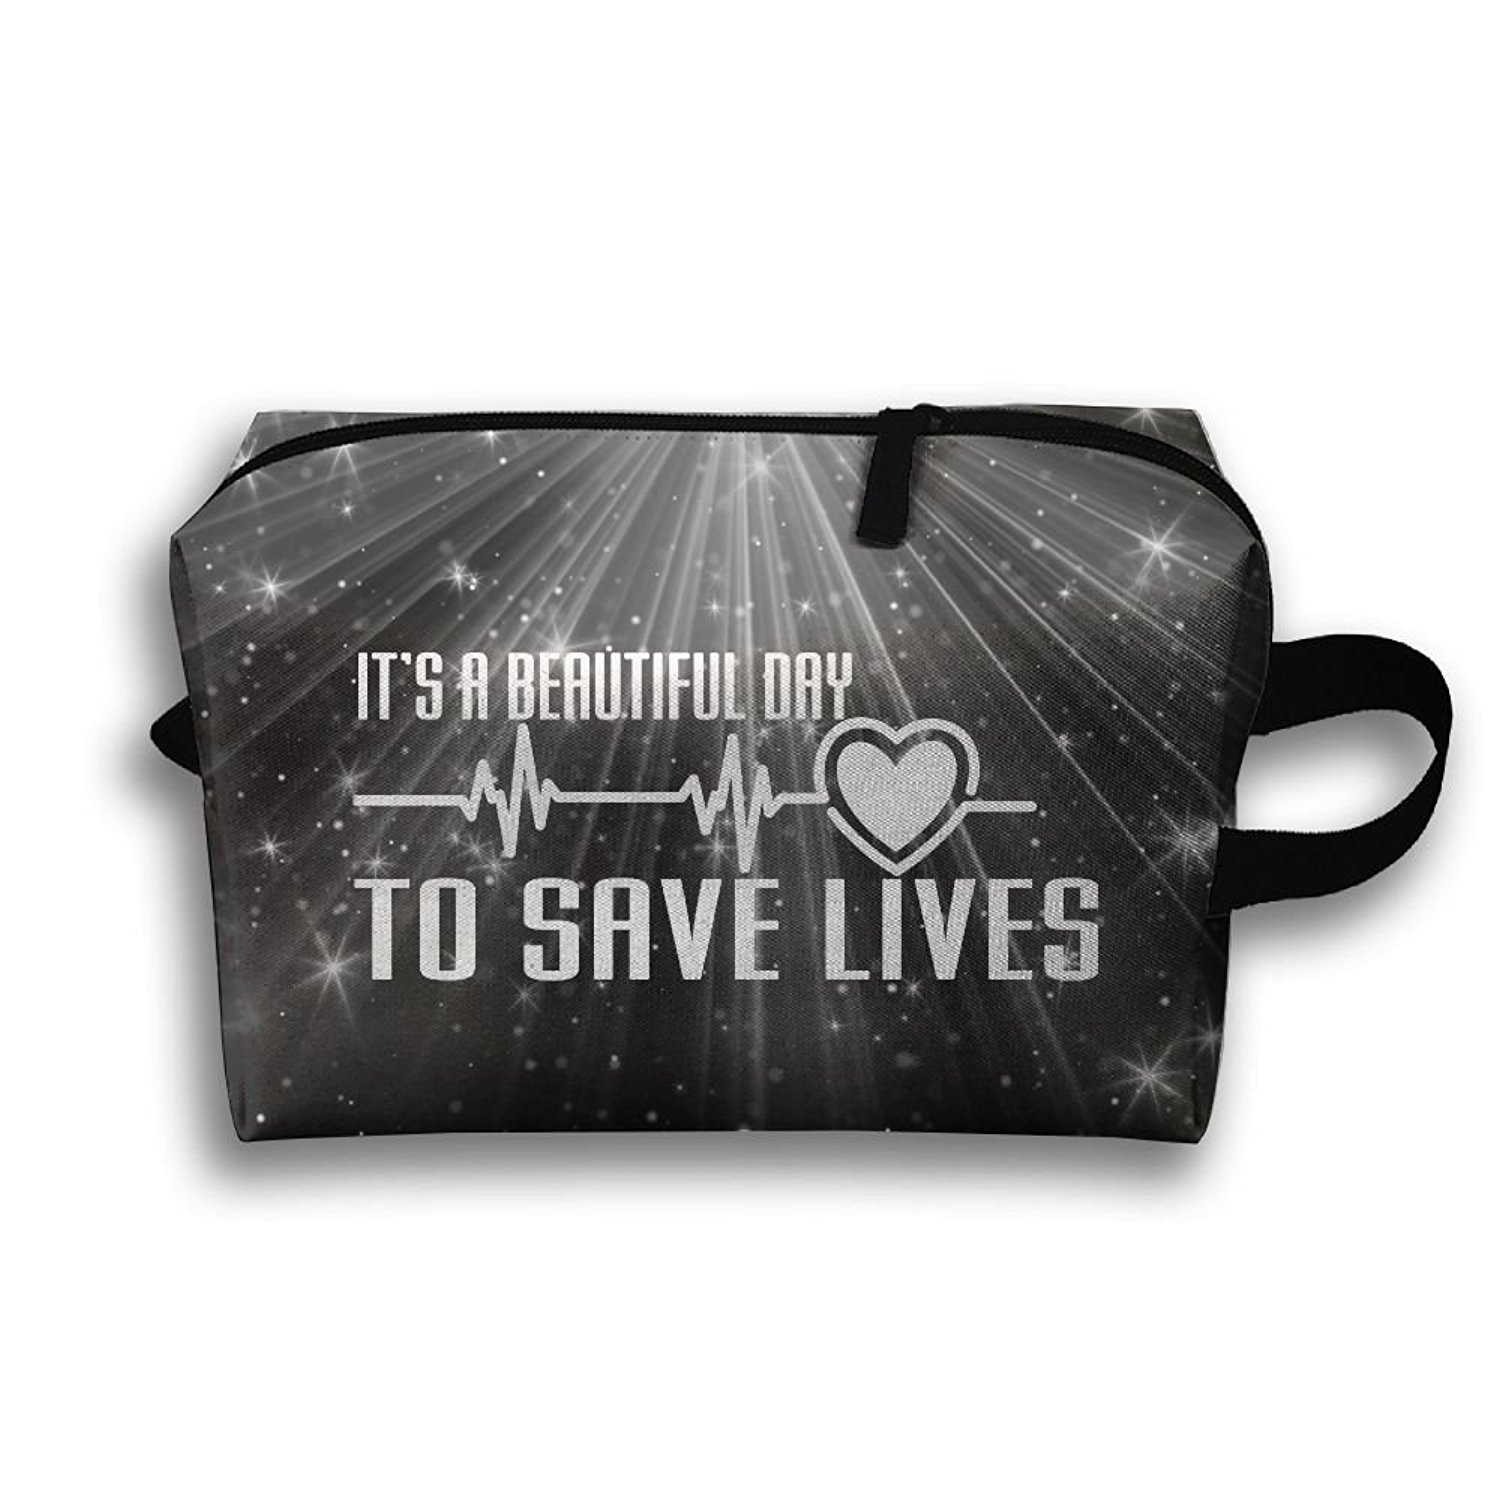 It's A Beautiful Day To Save Lives Travel Bag Multifunction Portable Toiletry Bag Organizer Storage